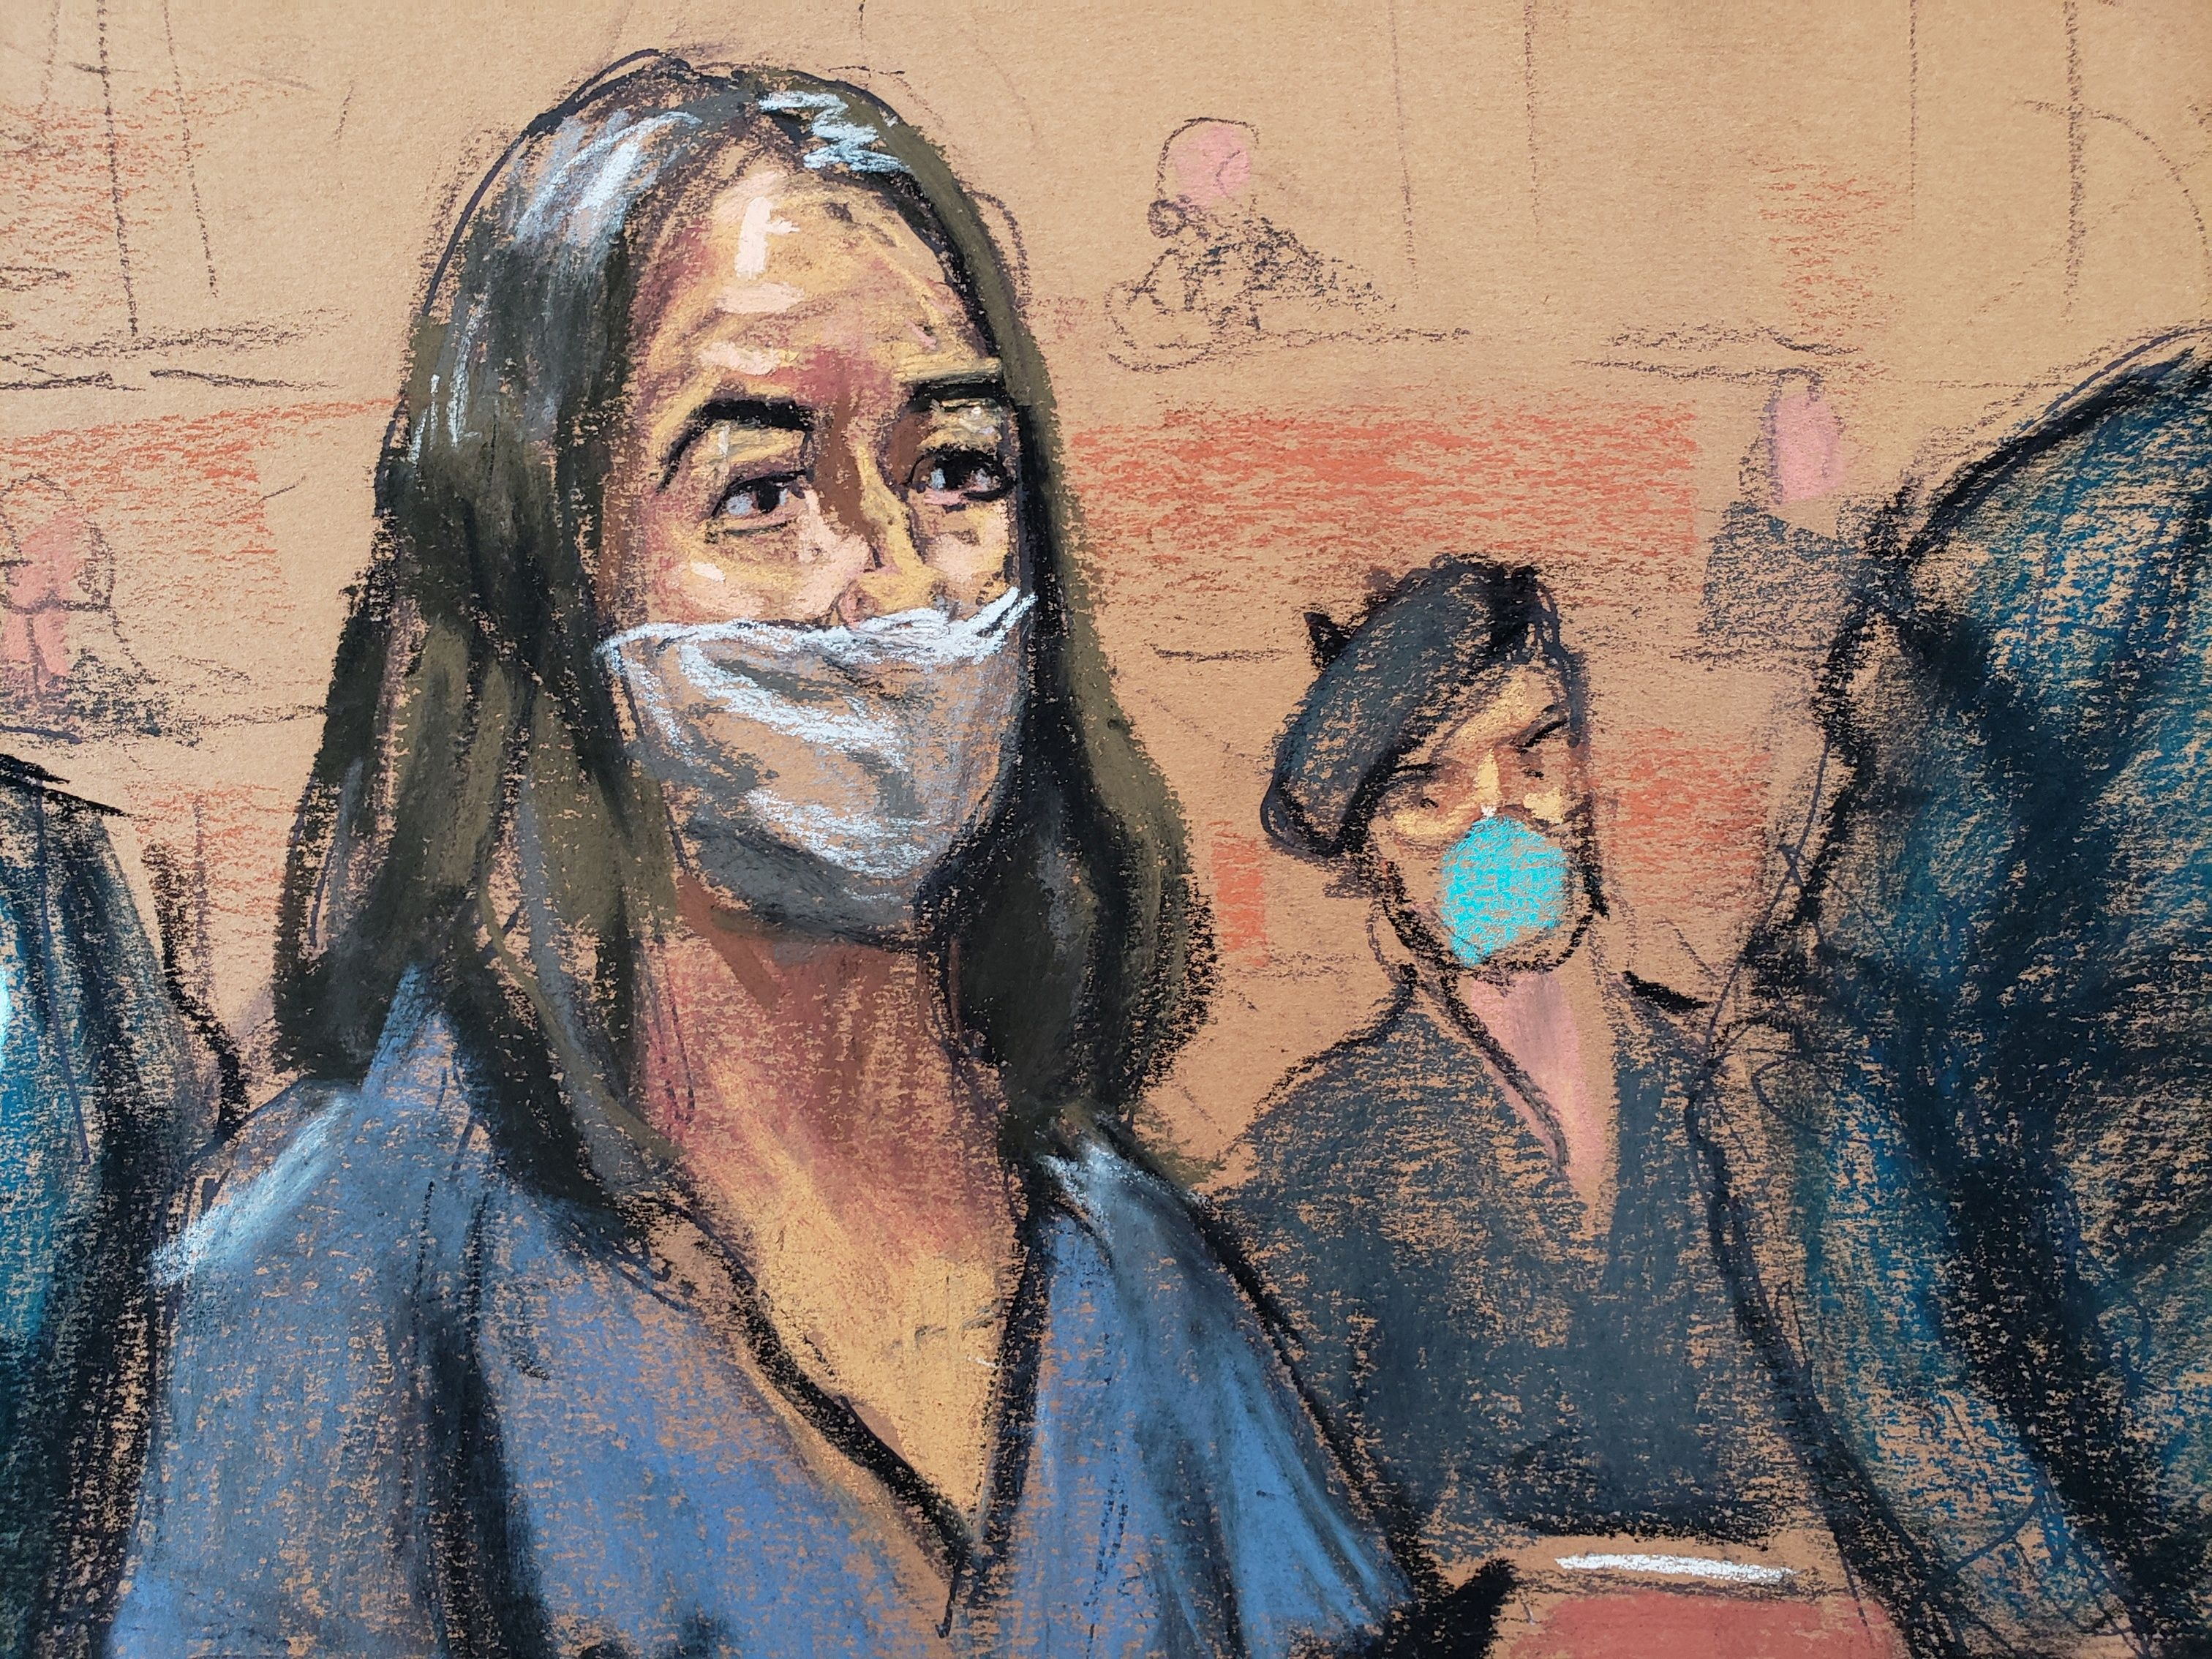 British socialite Ghislaine Maxwell appears during her arraignment hearing on a new indictment at Manhattan Federal Court in New York City, New York, U.S. April 23, 2021, in this courtroom sketch. REUTERS/Jane Rosenberg